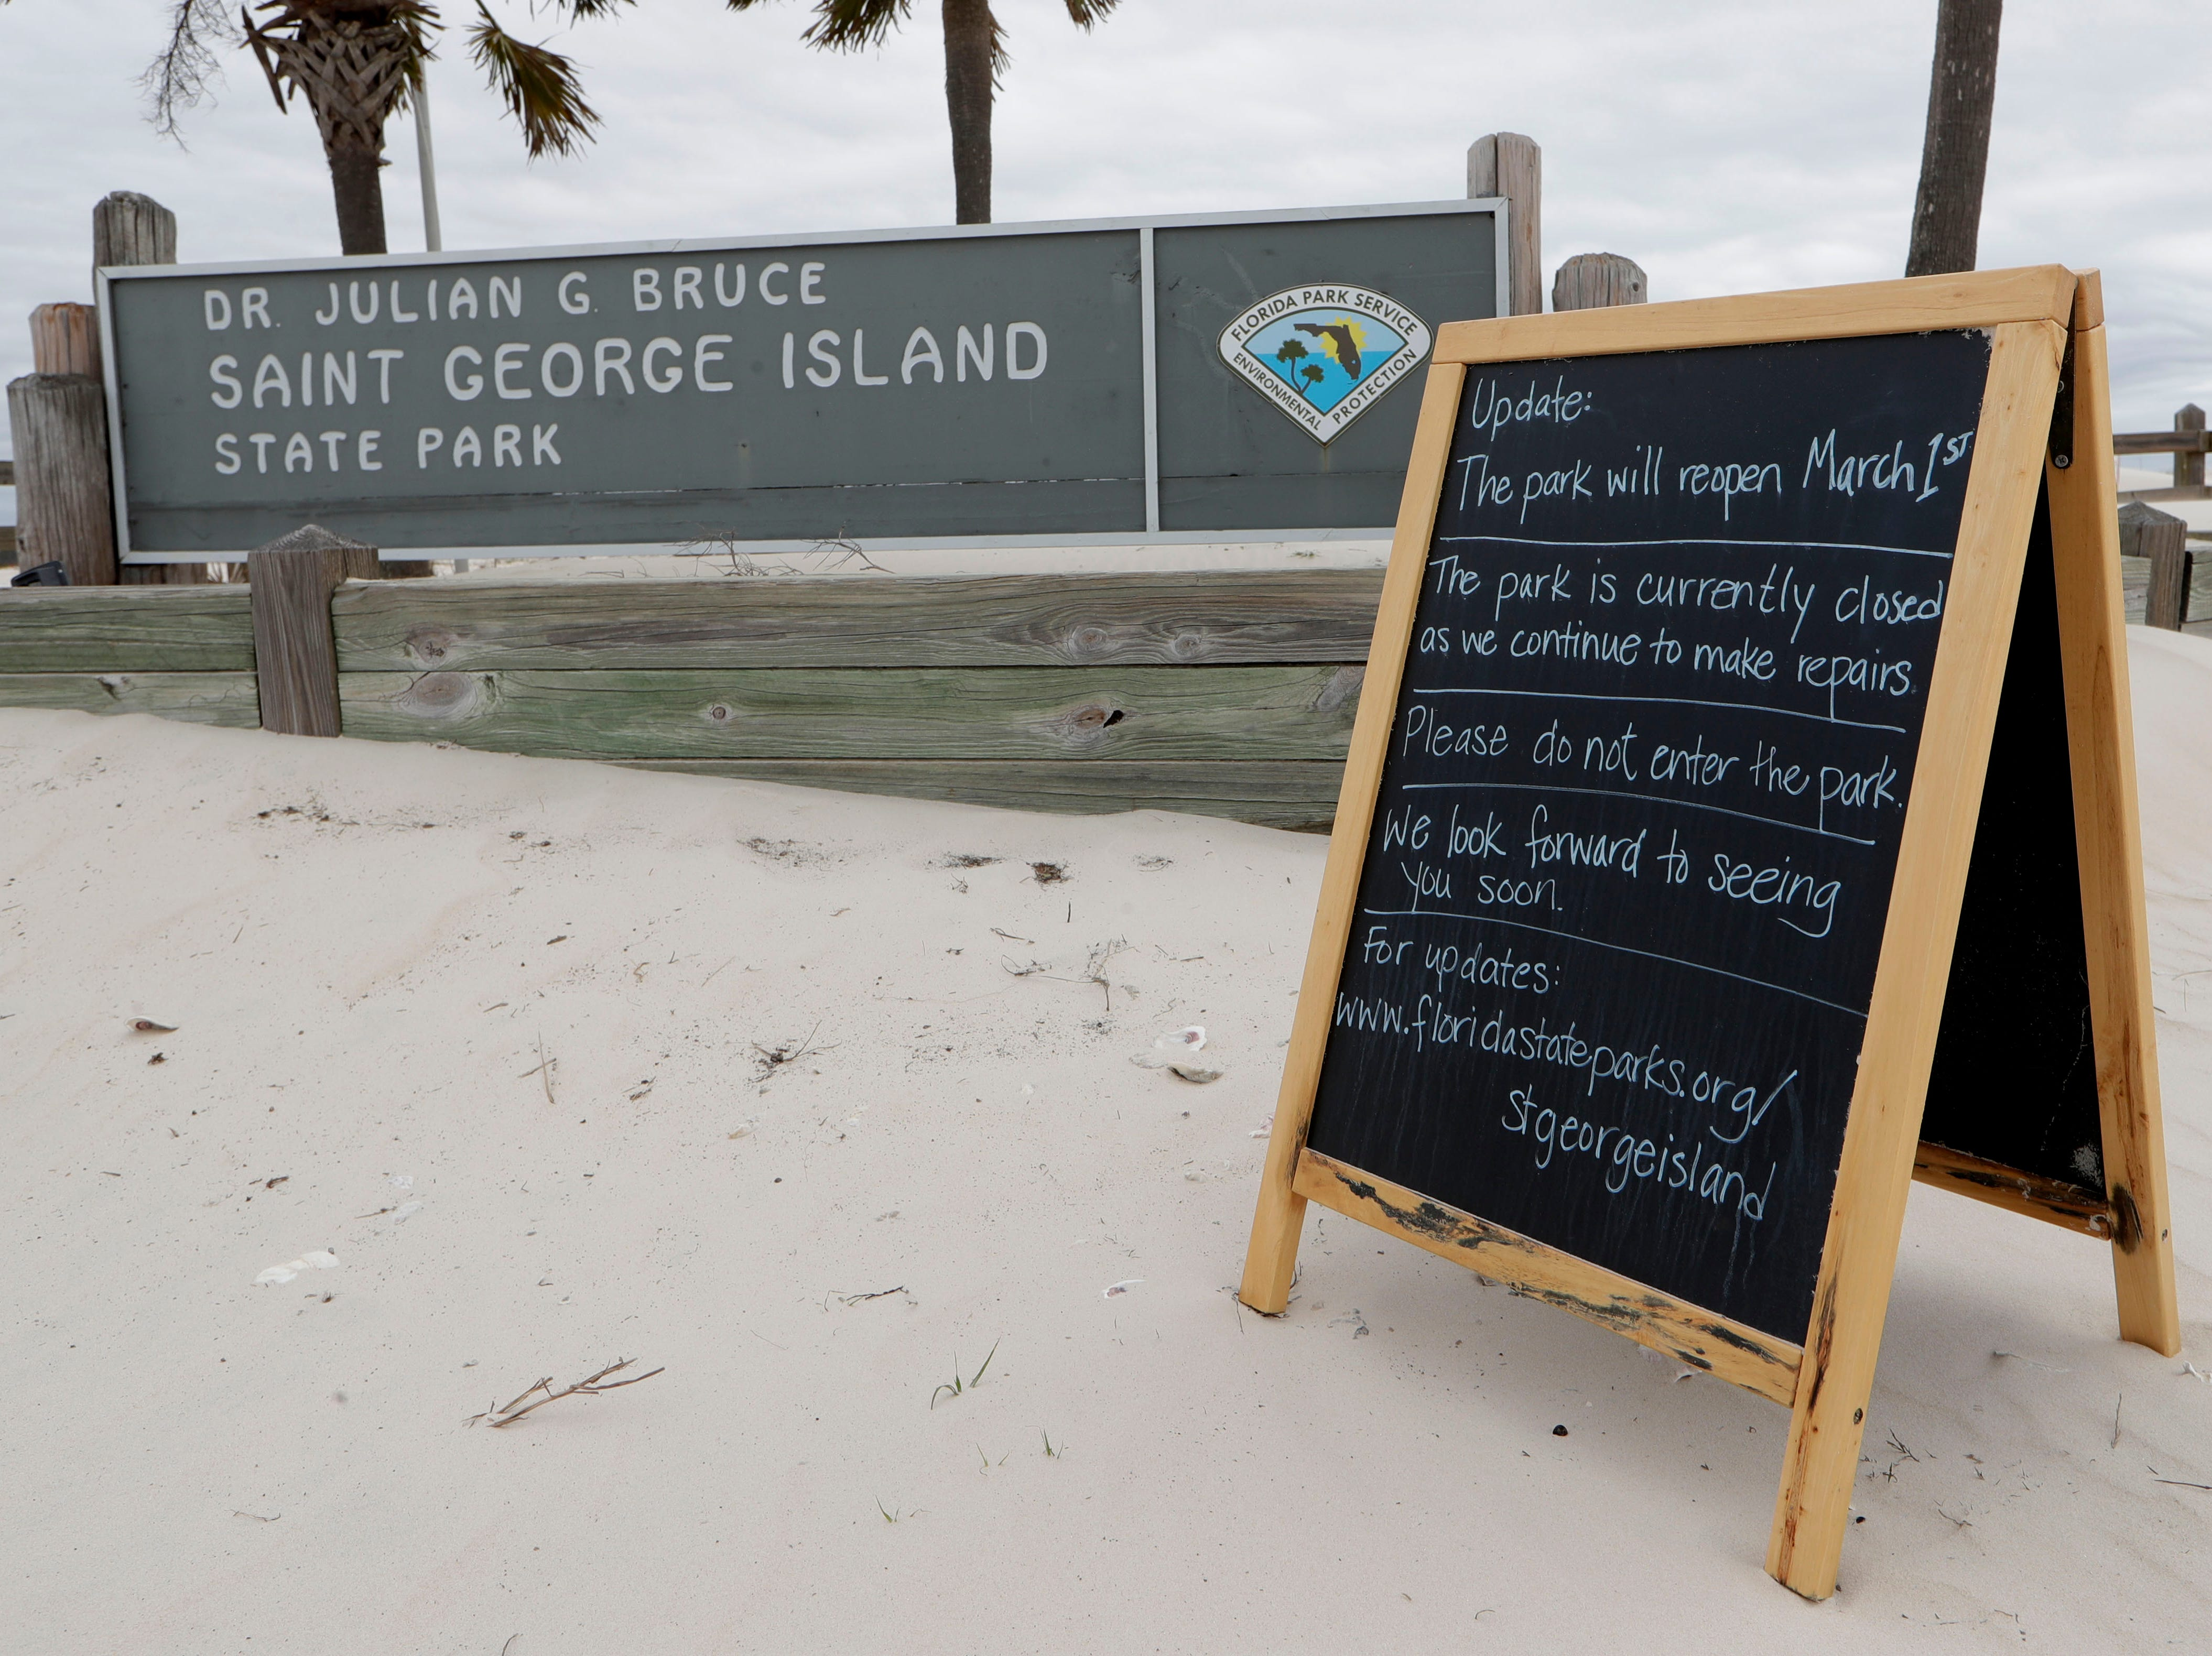 A chalkboard sign sits out front of the St. George Island State Park entrance telling guests about the park's plans to reopen on March 1, 2019.